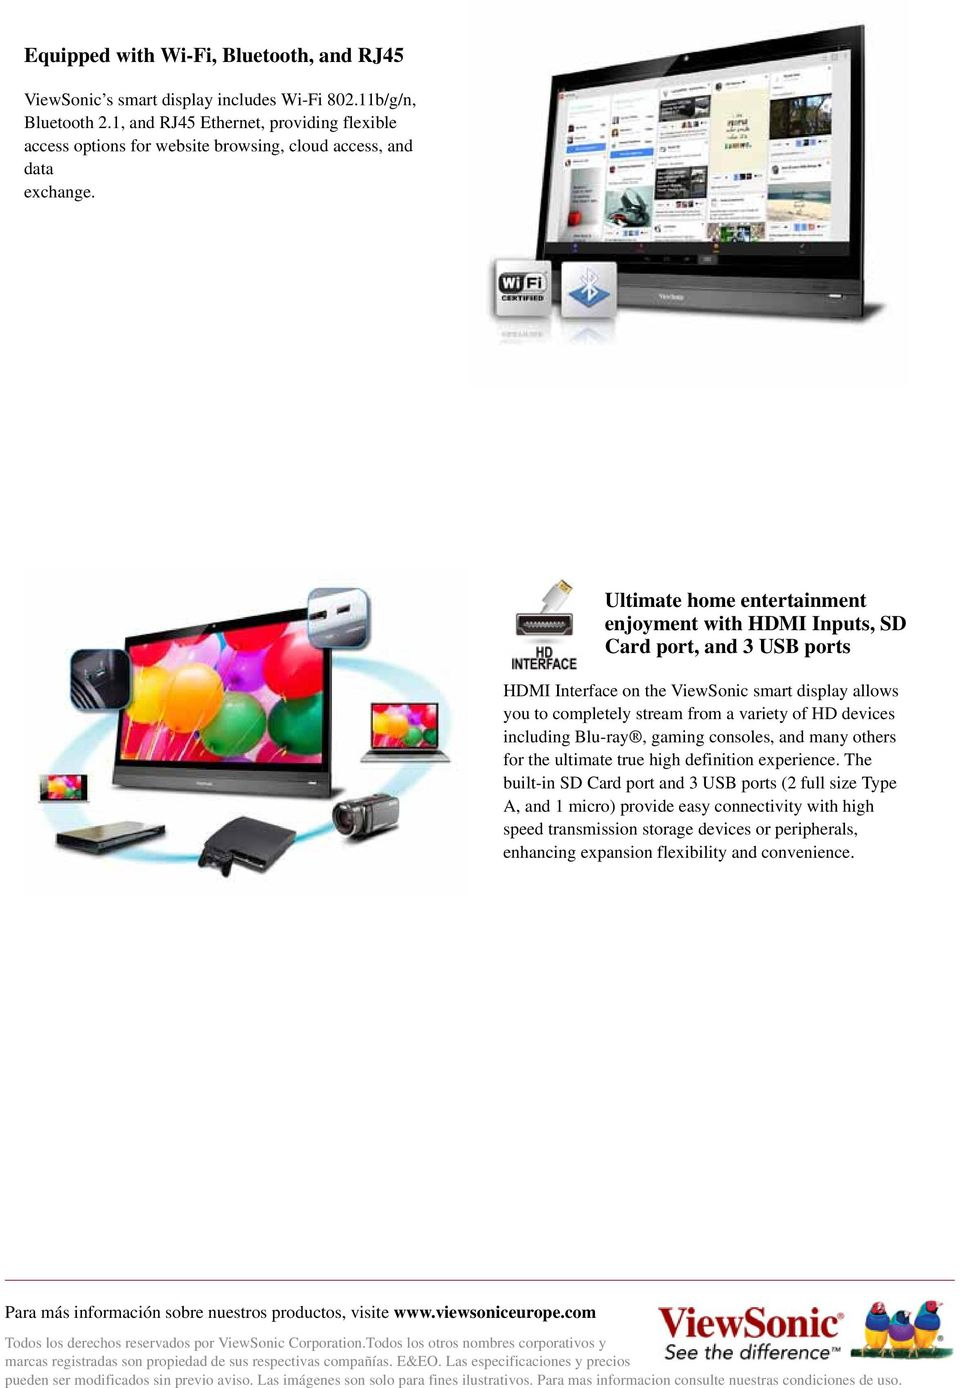 Ultimate home entertainment enjoyment with HDMI Inputs, SD Card port, and 3 USB ports HDMI Interface on the ViewSonic smart display allows you to completely stream from a variety